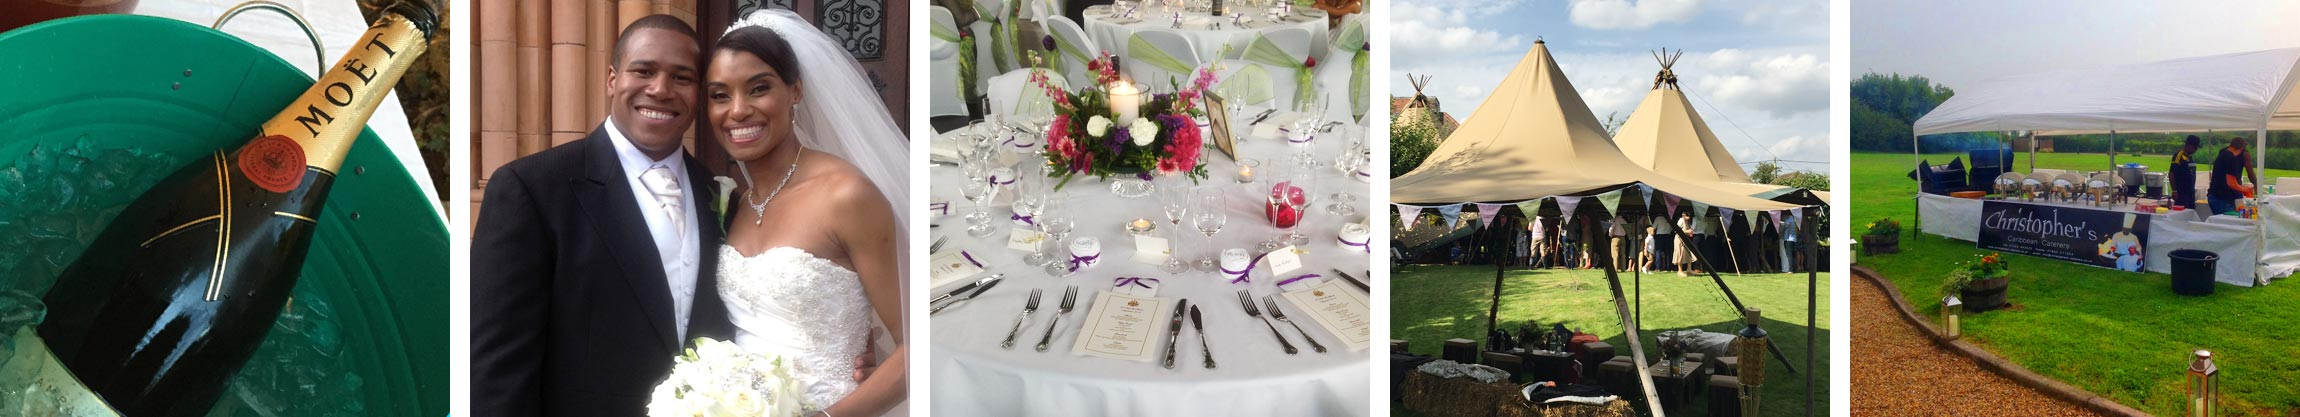 caterers-in-bexleyheath